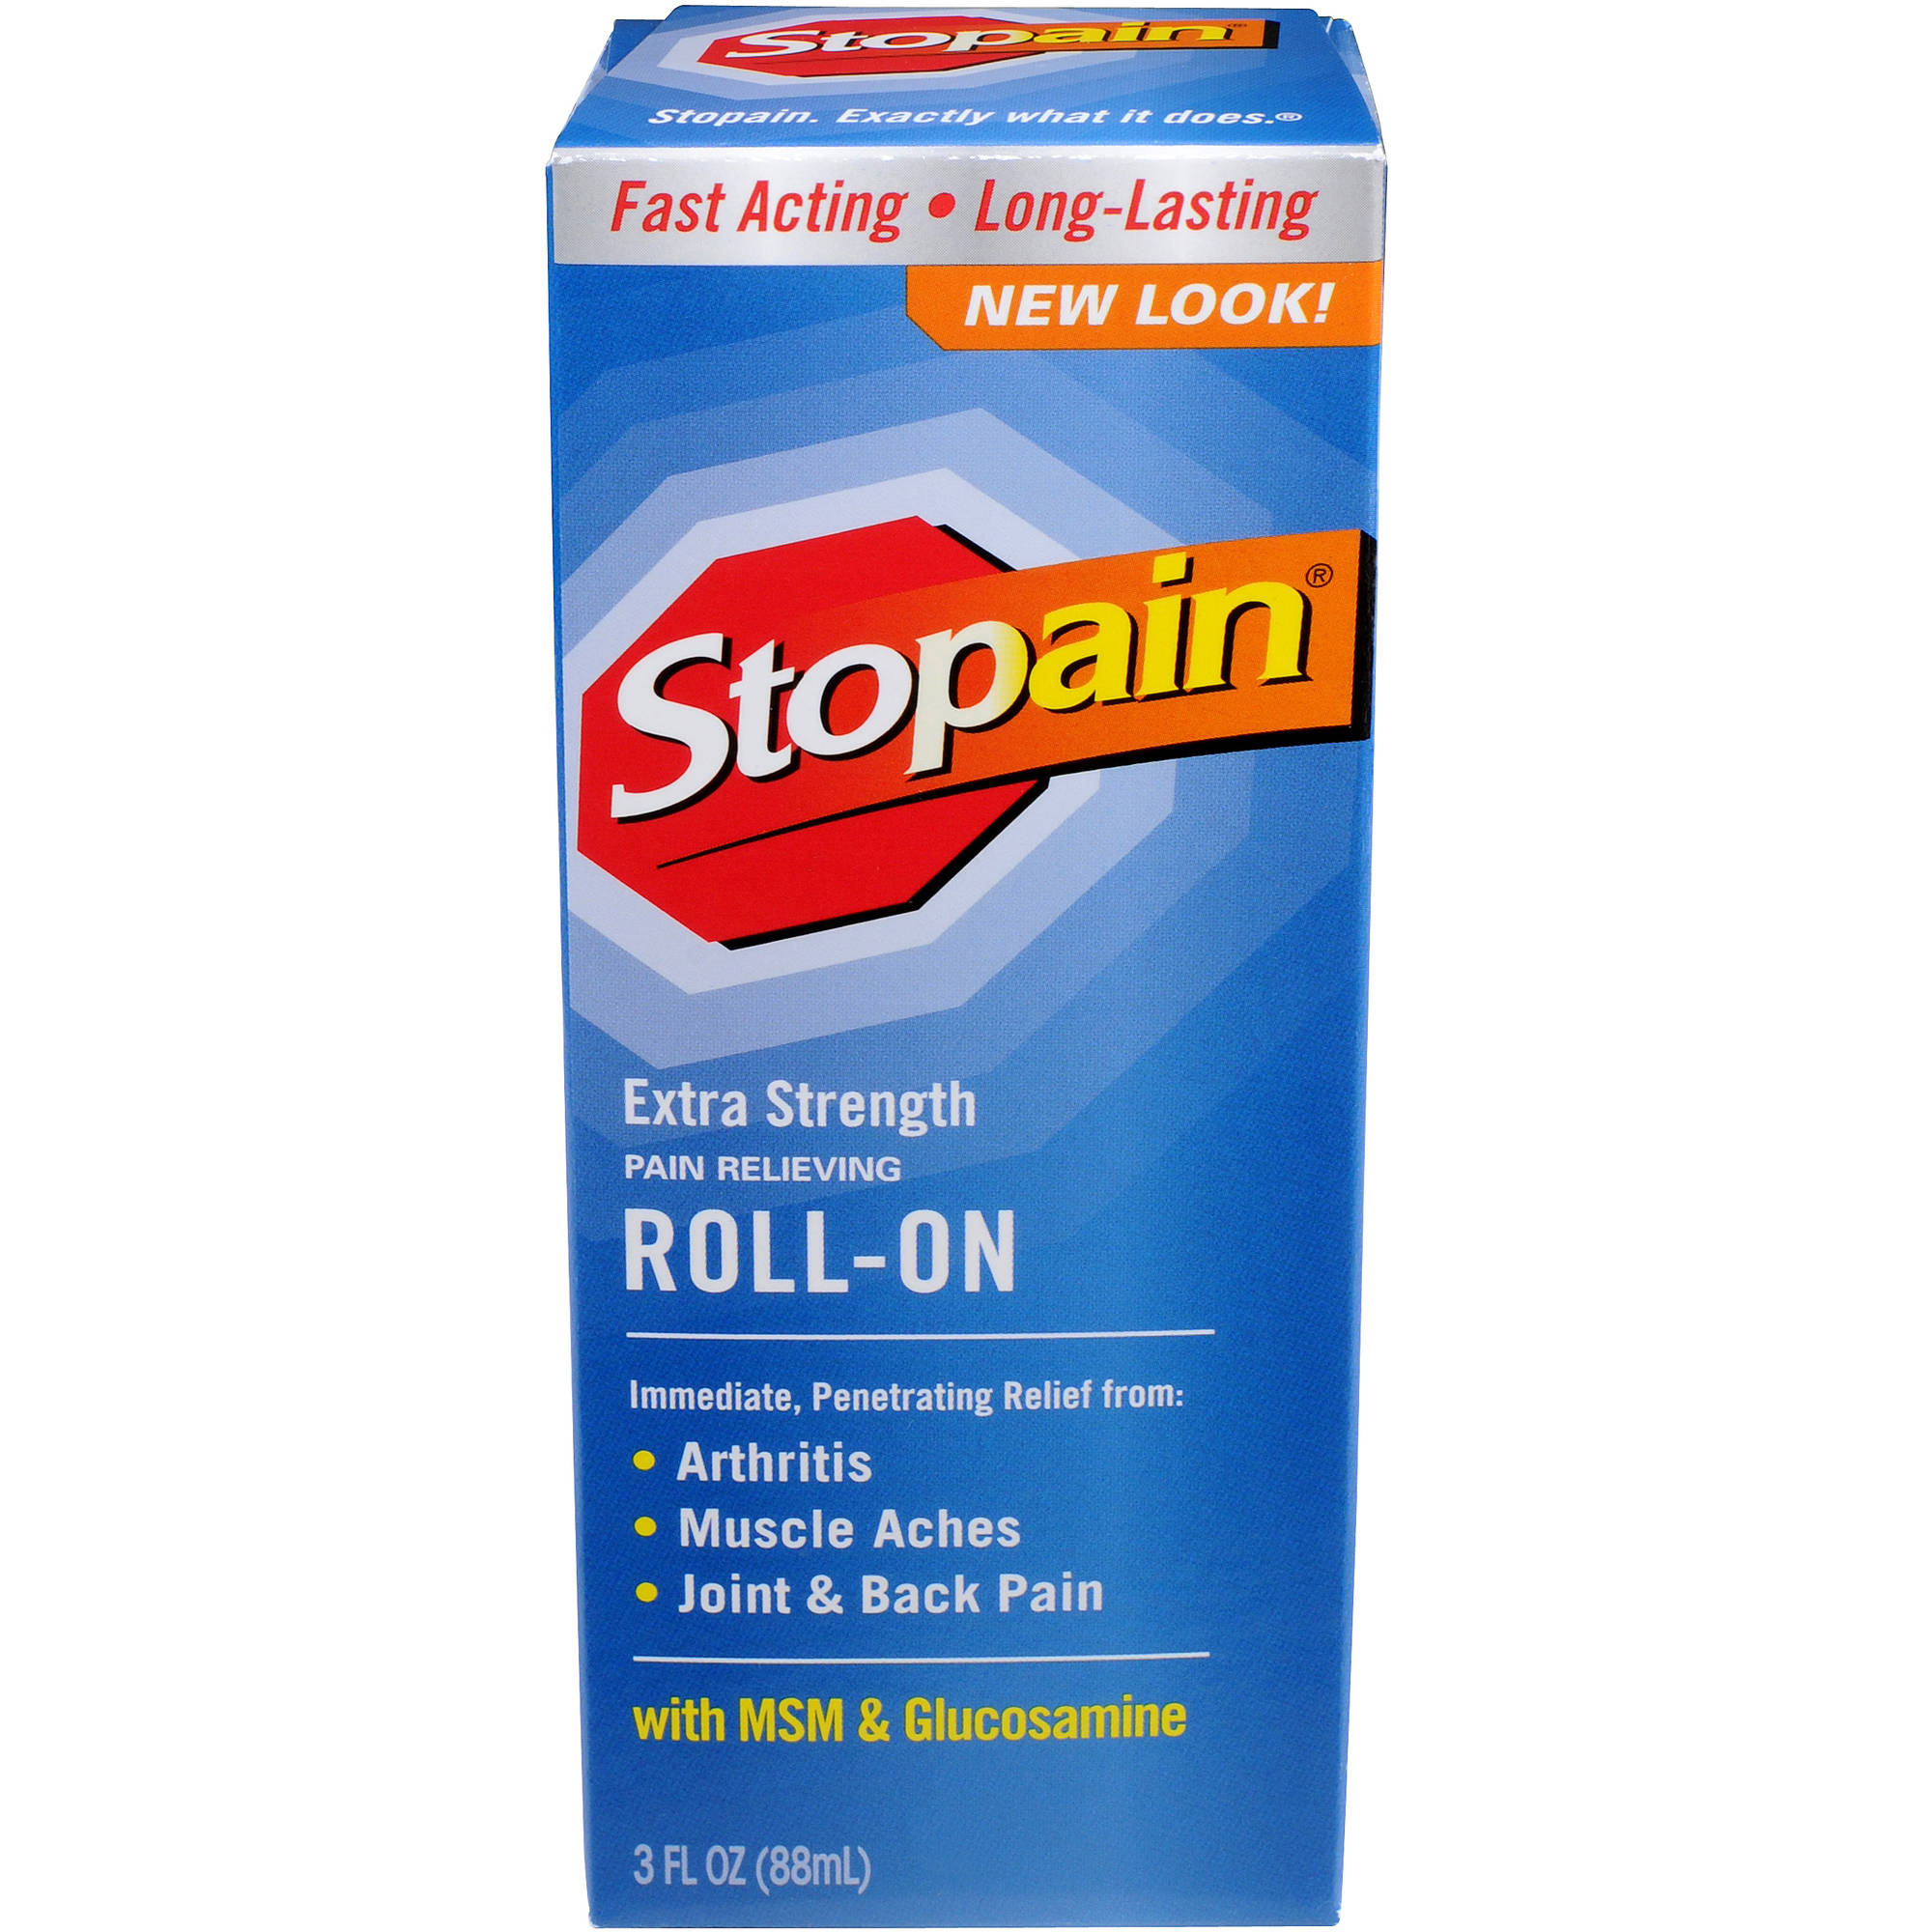 Stopain Pain Relief Extra Strength Roll-On 3 Fl Oz